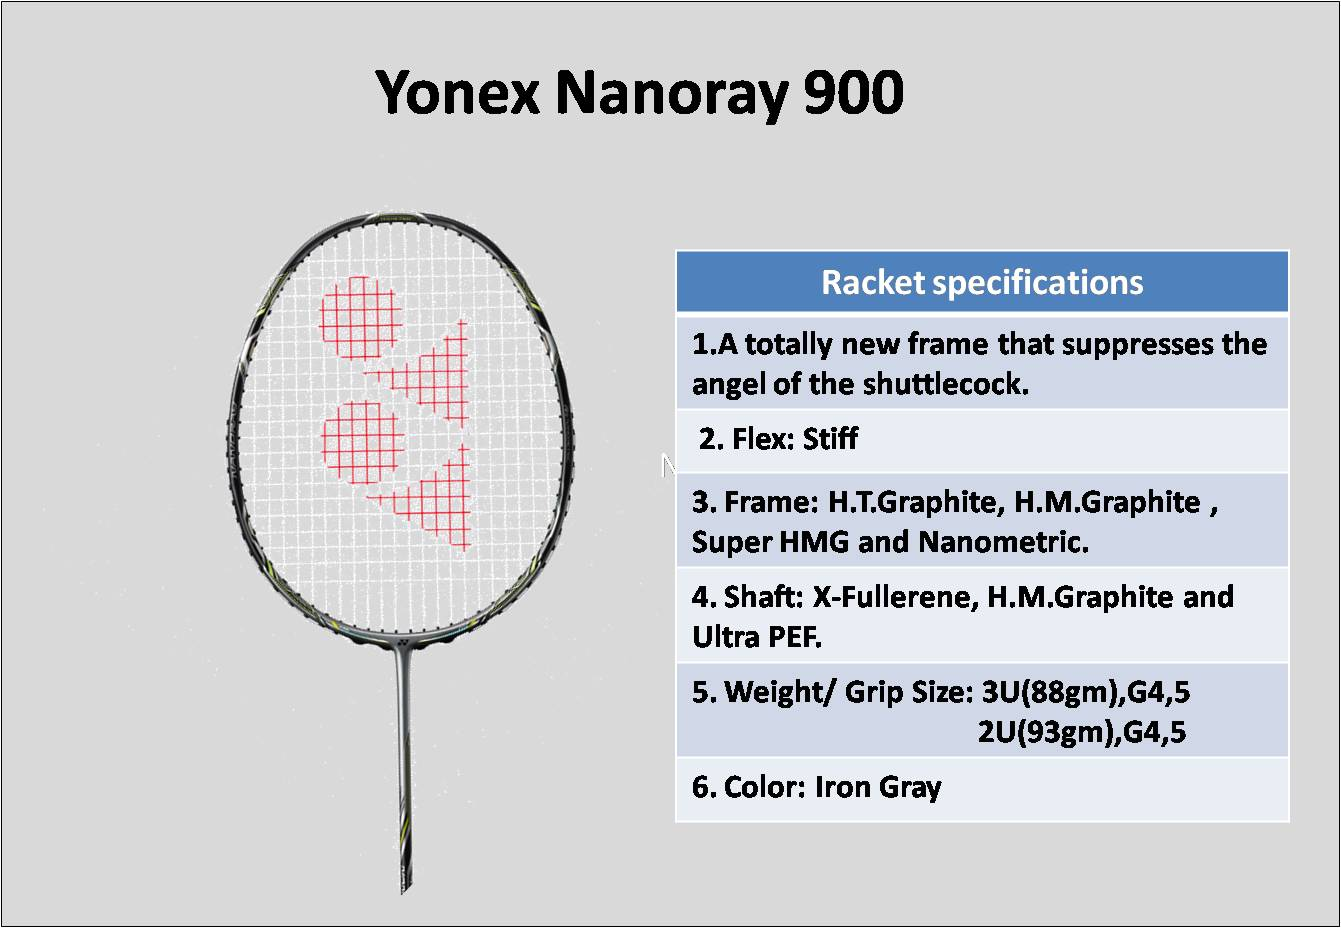 About Yonex Nanoray 900 Badminton Racket